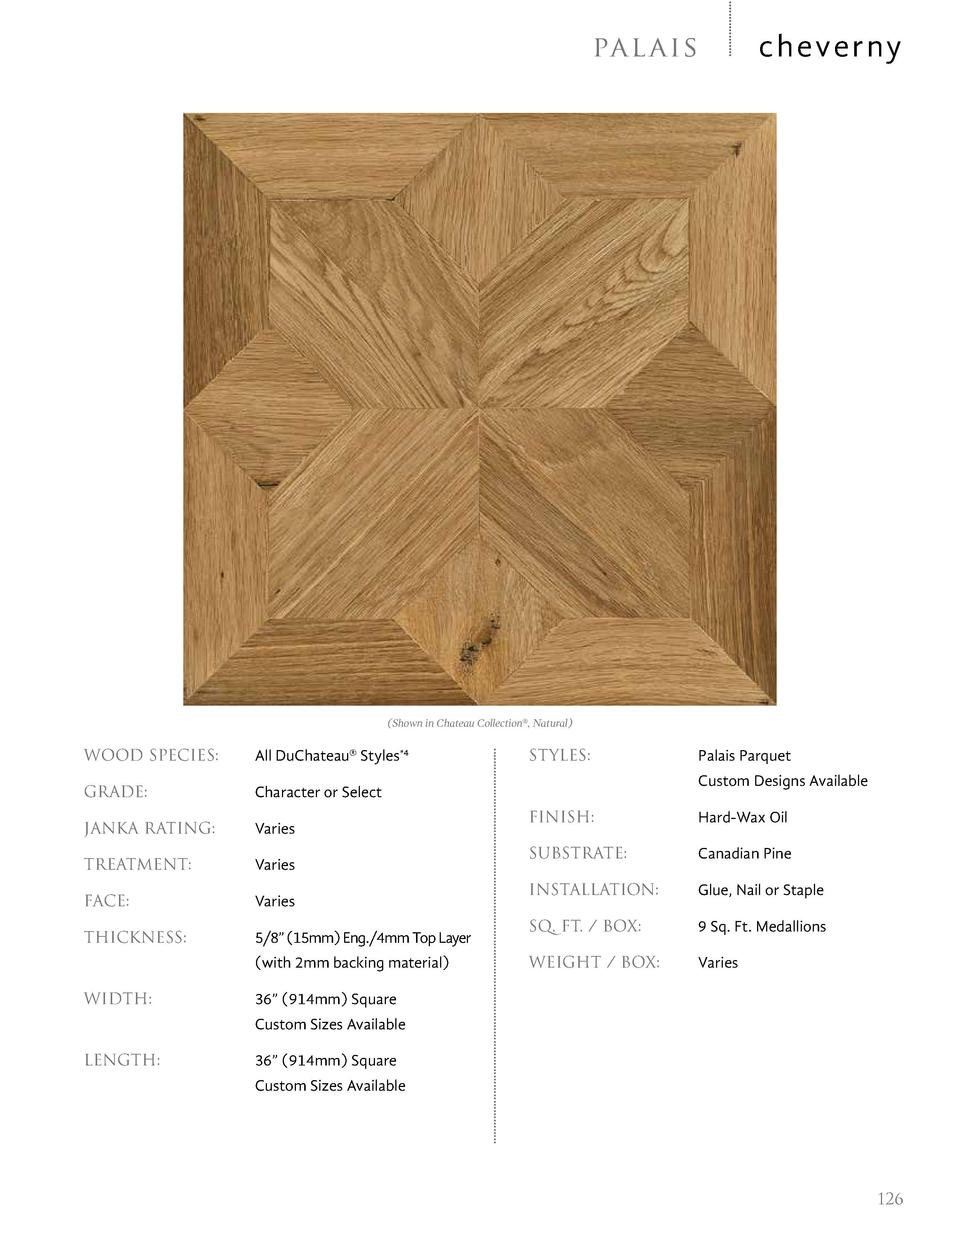 cheverny  pa l ai s   Shown in Chateau Collection  , Natural   WOOD SPECIES     All DuChateau   Styles 4  GRADE     Charac...